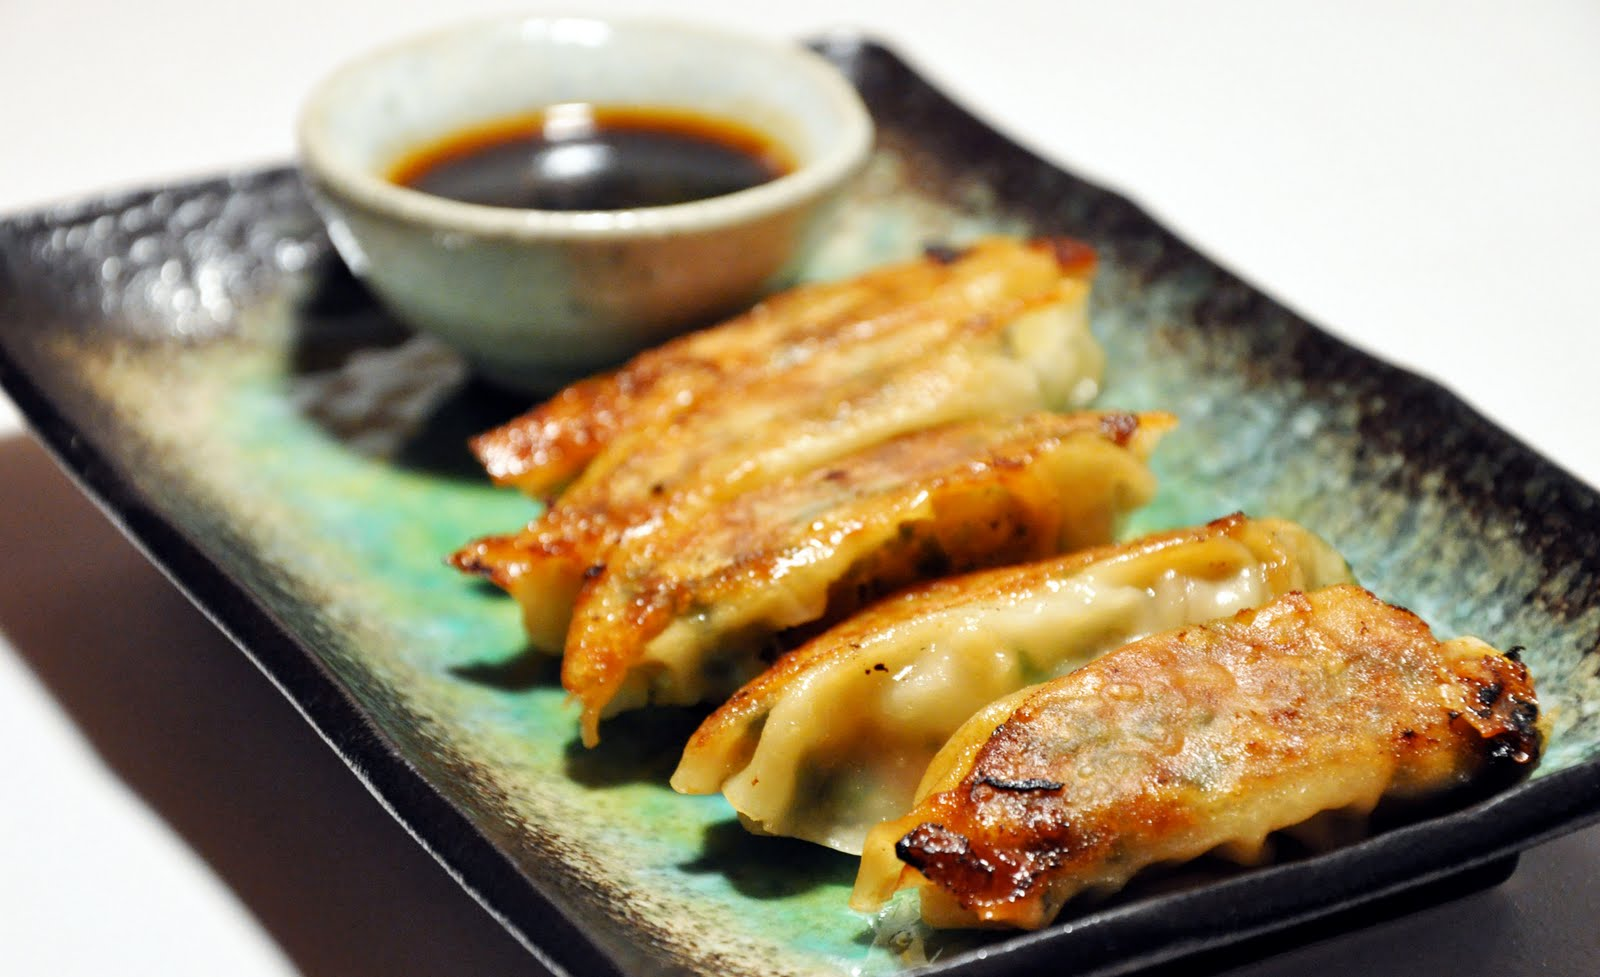 tsukurikata: pork gyoza (potstickers) with dipping sauce